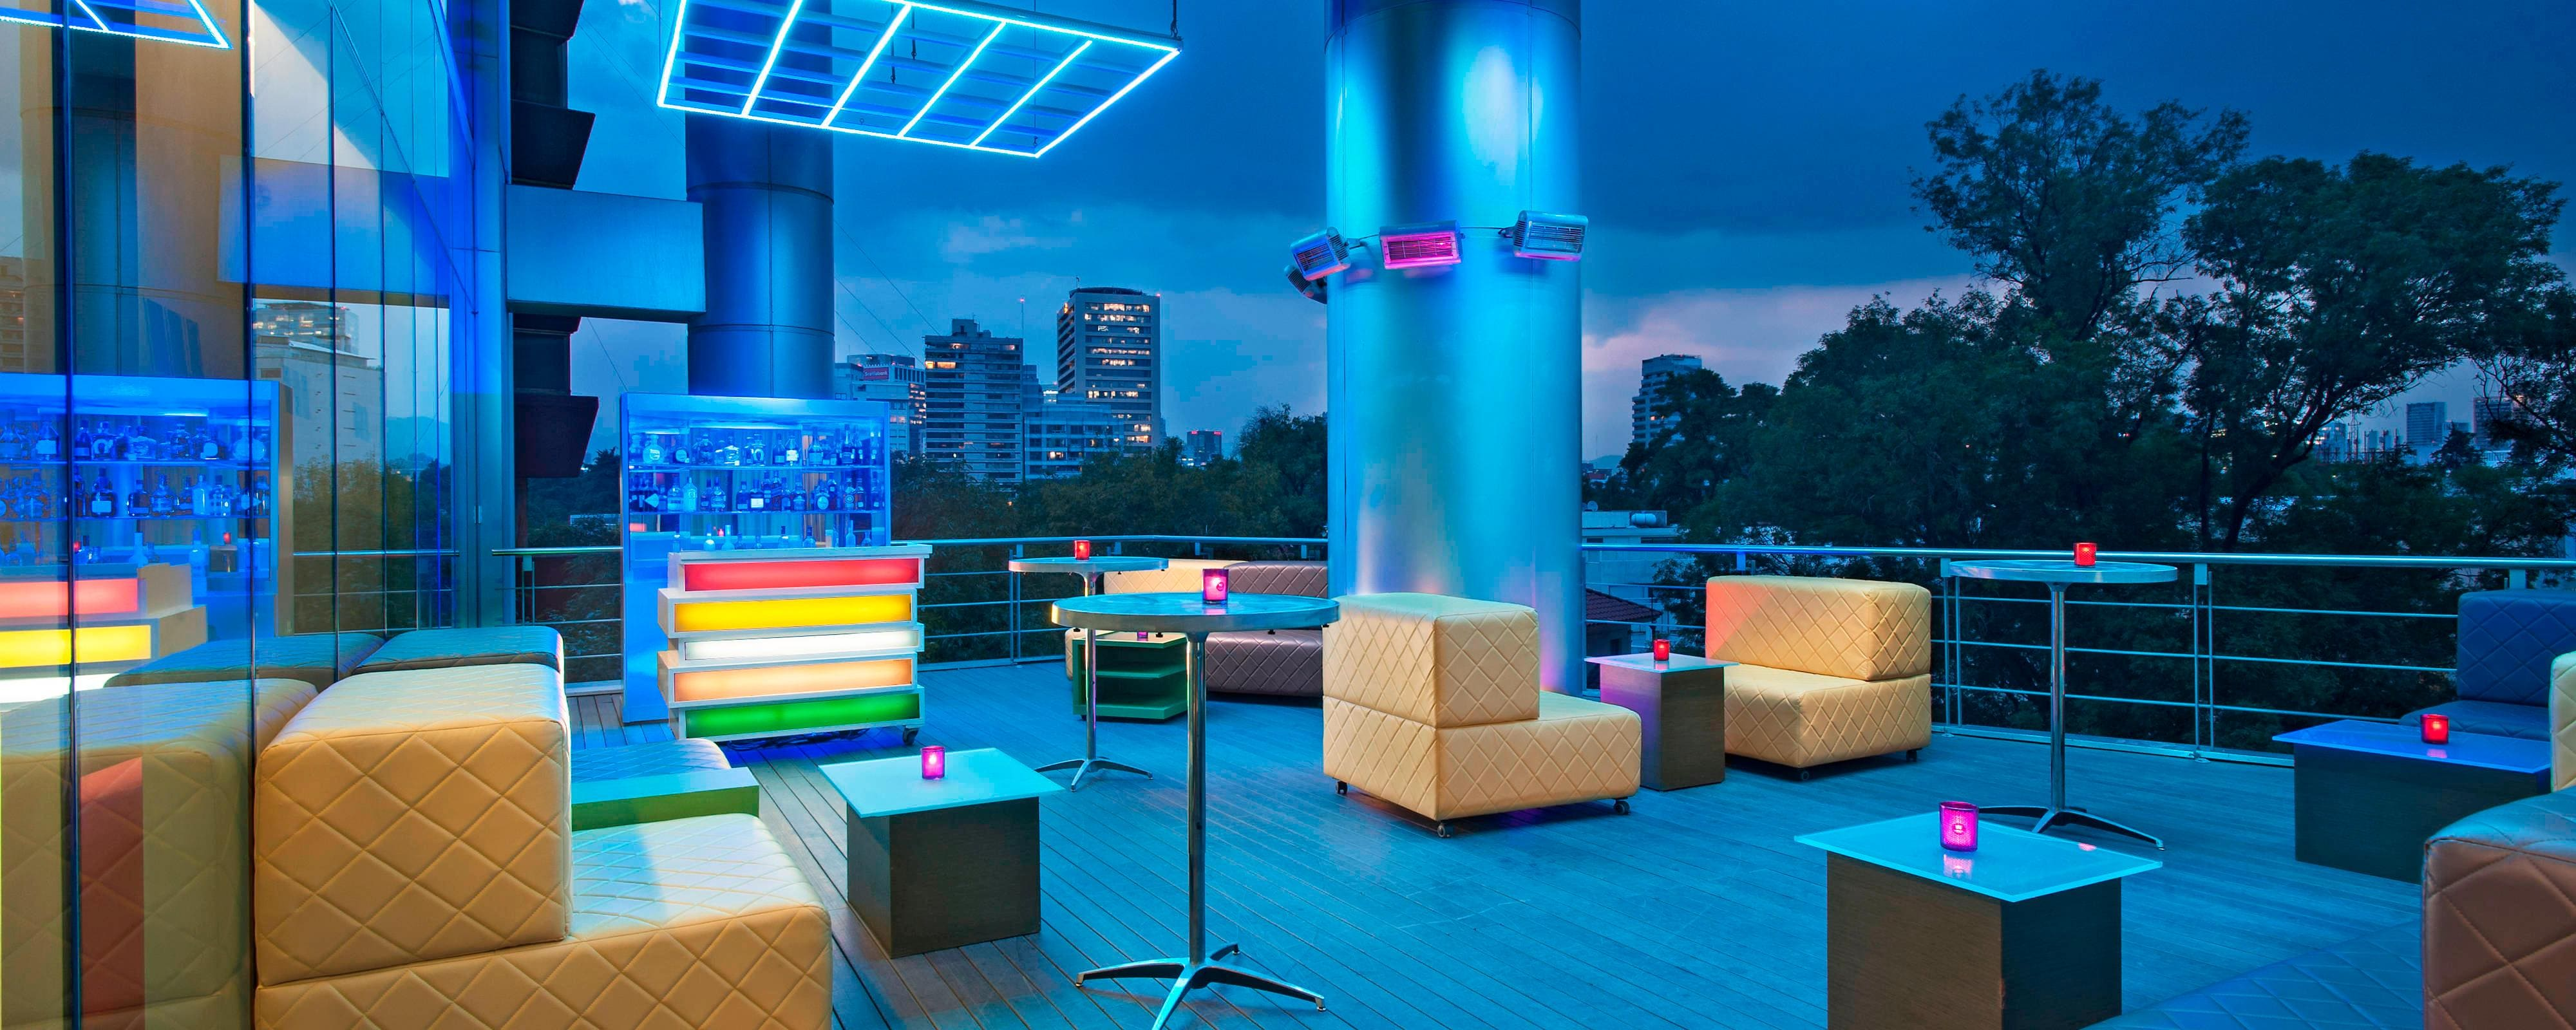 Luxury Boutique Hotel In Mexico City